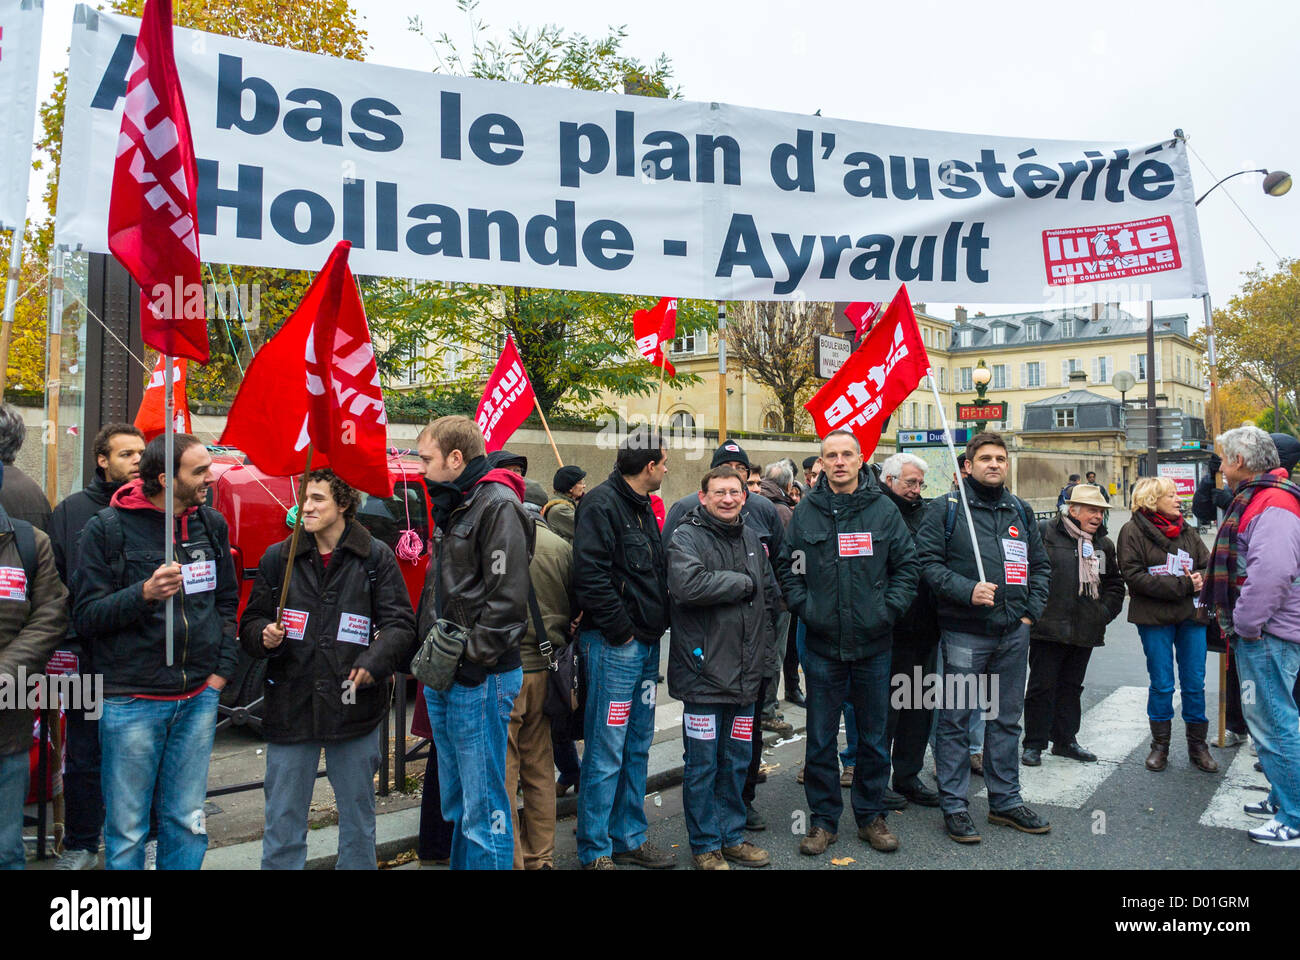 Paris, France, Crowd Holding Banners at Anti-Austerity Demonstration, French Labour Unions, CGT, - Stock Image